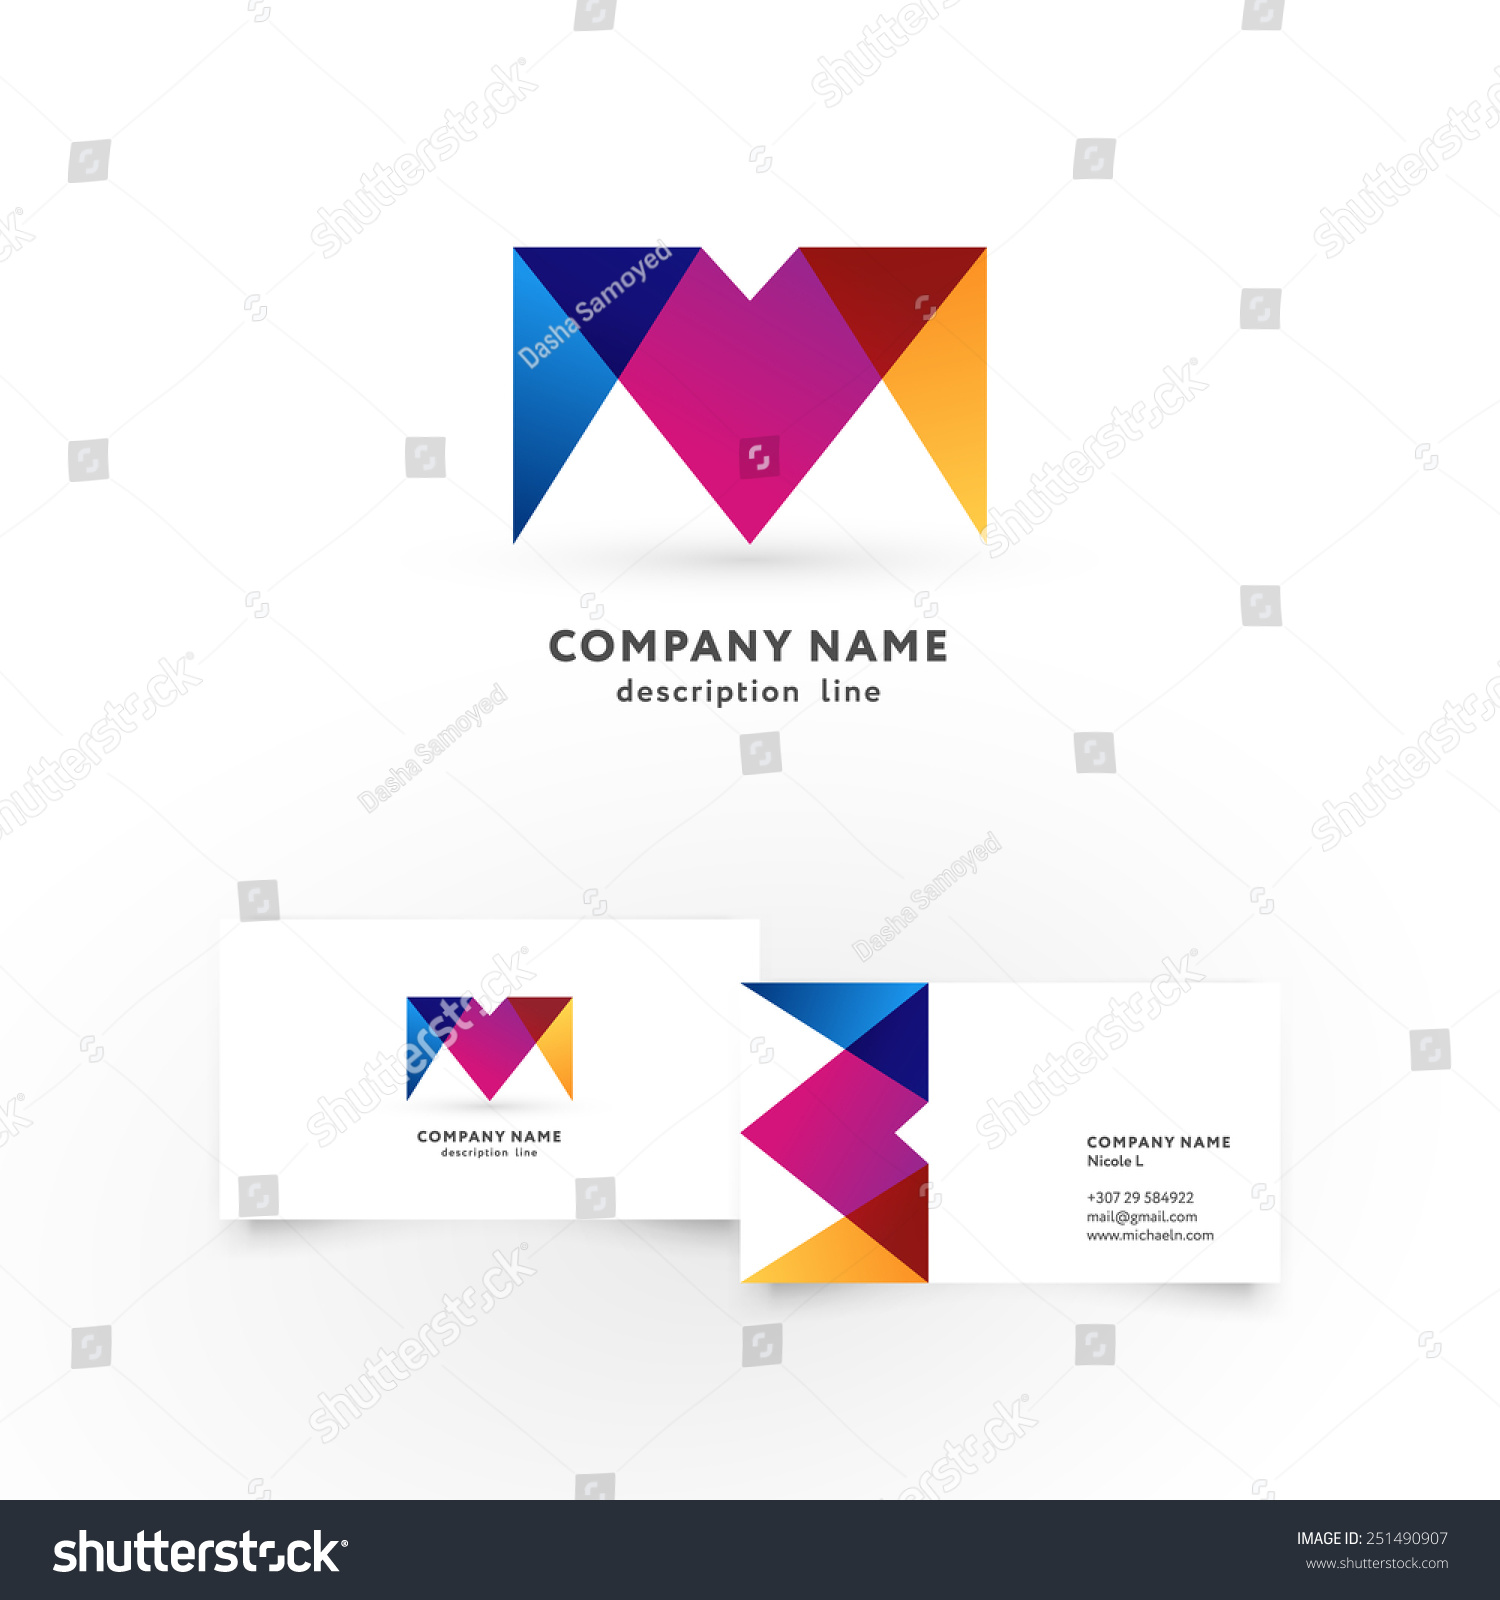 Modern icon design m letter shape stock vector 251490907 modern icon design m letter shape element with business card template best for identity and magicingreecefo Choice Image